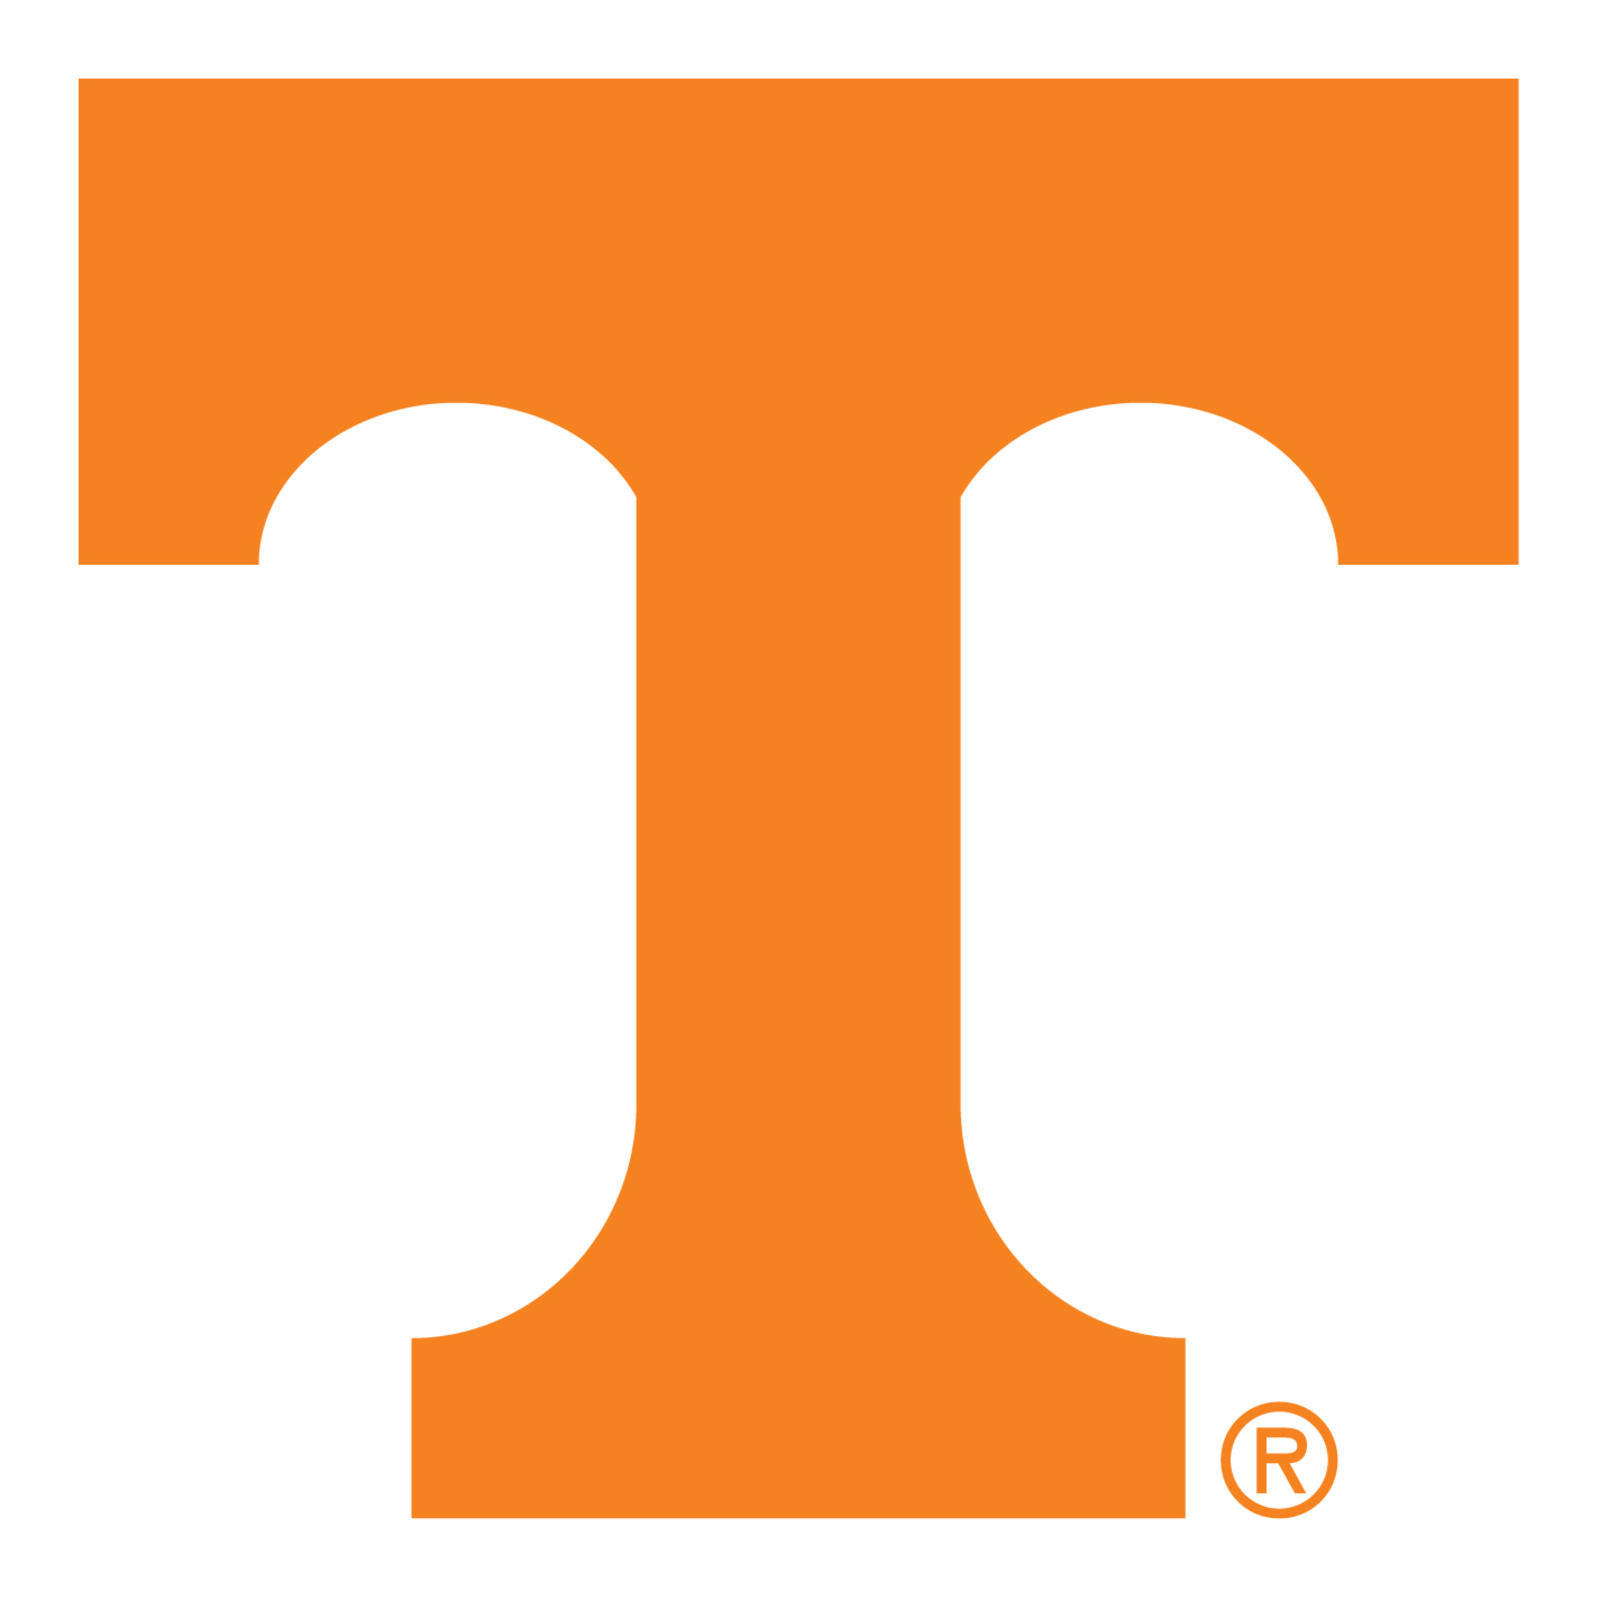 Clipart tn vols logo black and white. Ut enhances brand across